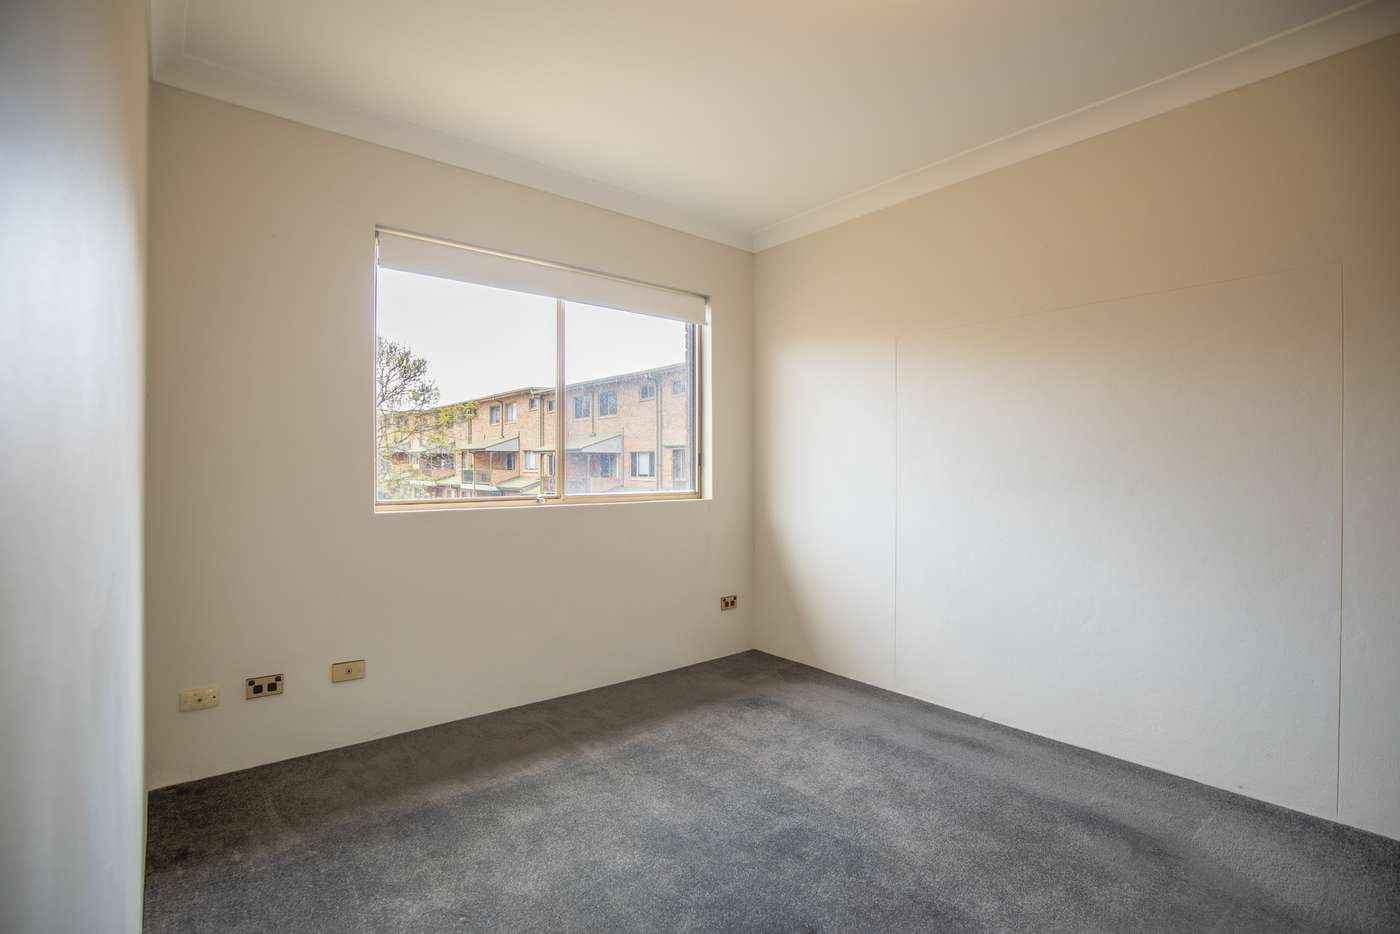 Sixth view of Homely apartment listing, 110/219 Chalmers Street, Redfern NSW 2016